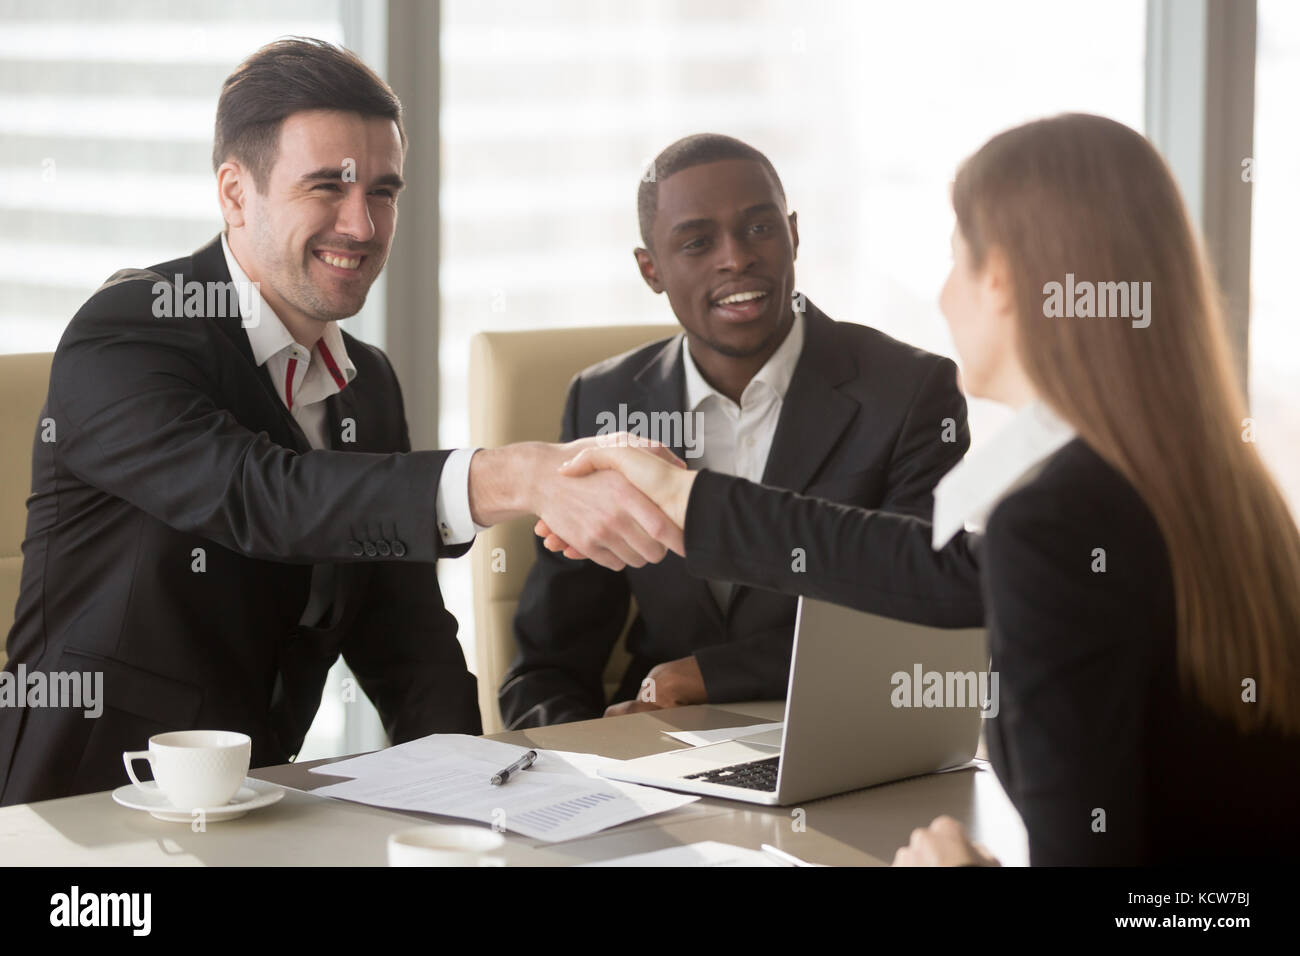 Happy smiling caucasian and afro american businessmen handshaking with female job applicant or businesswoman on - Stock Image